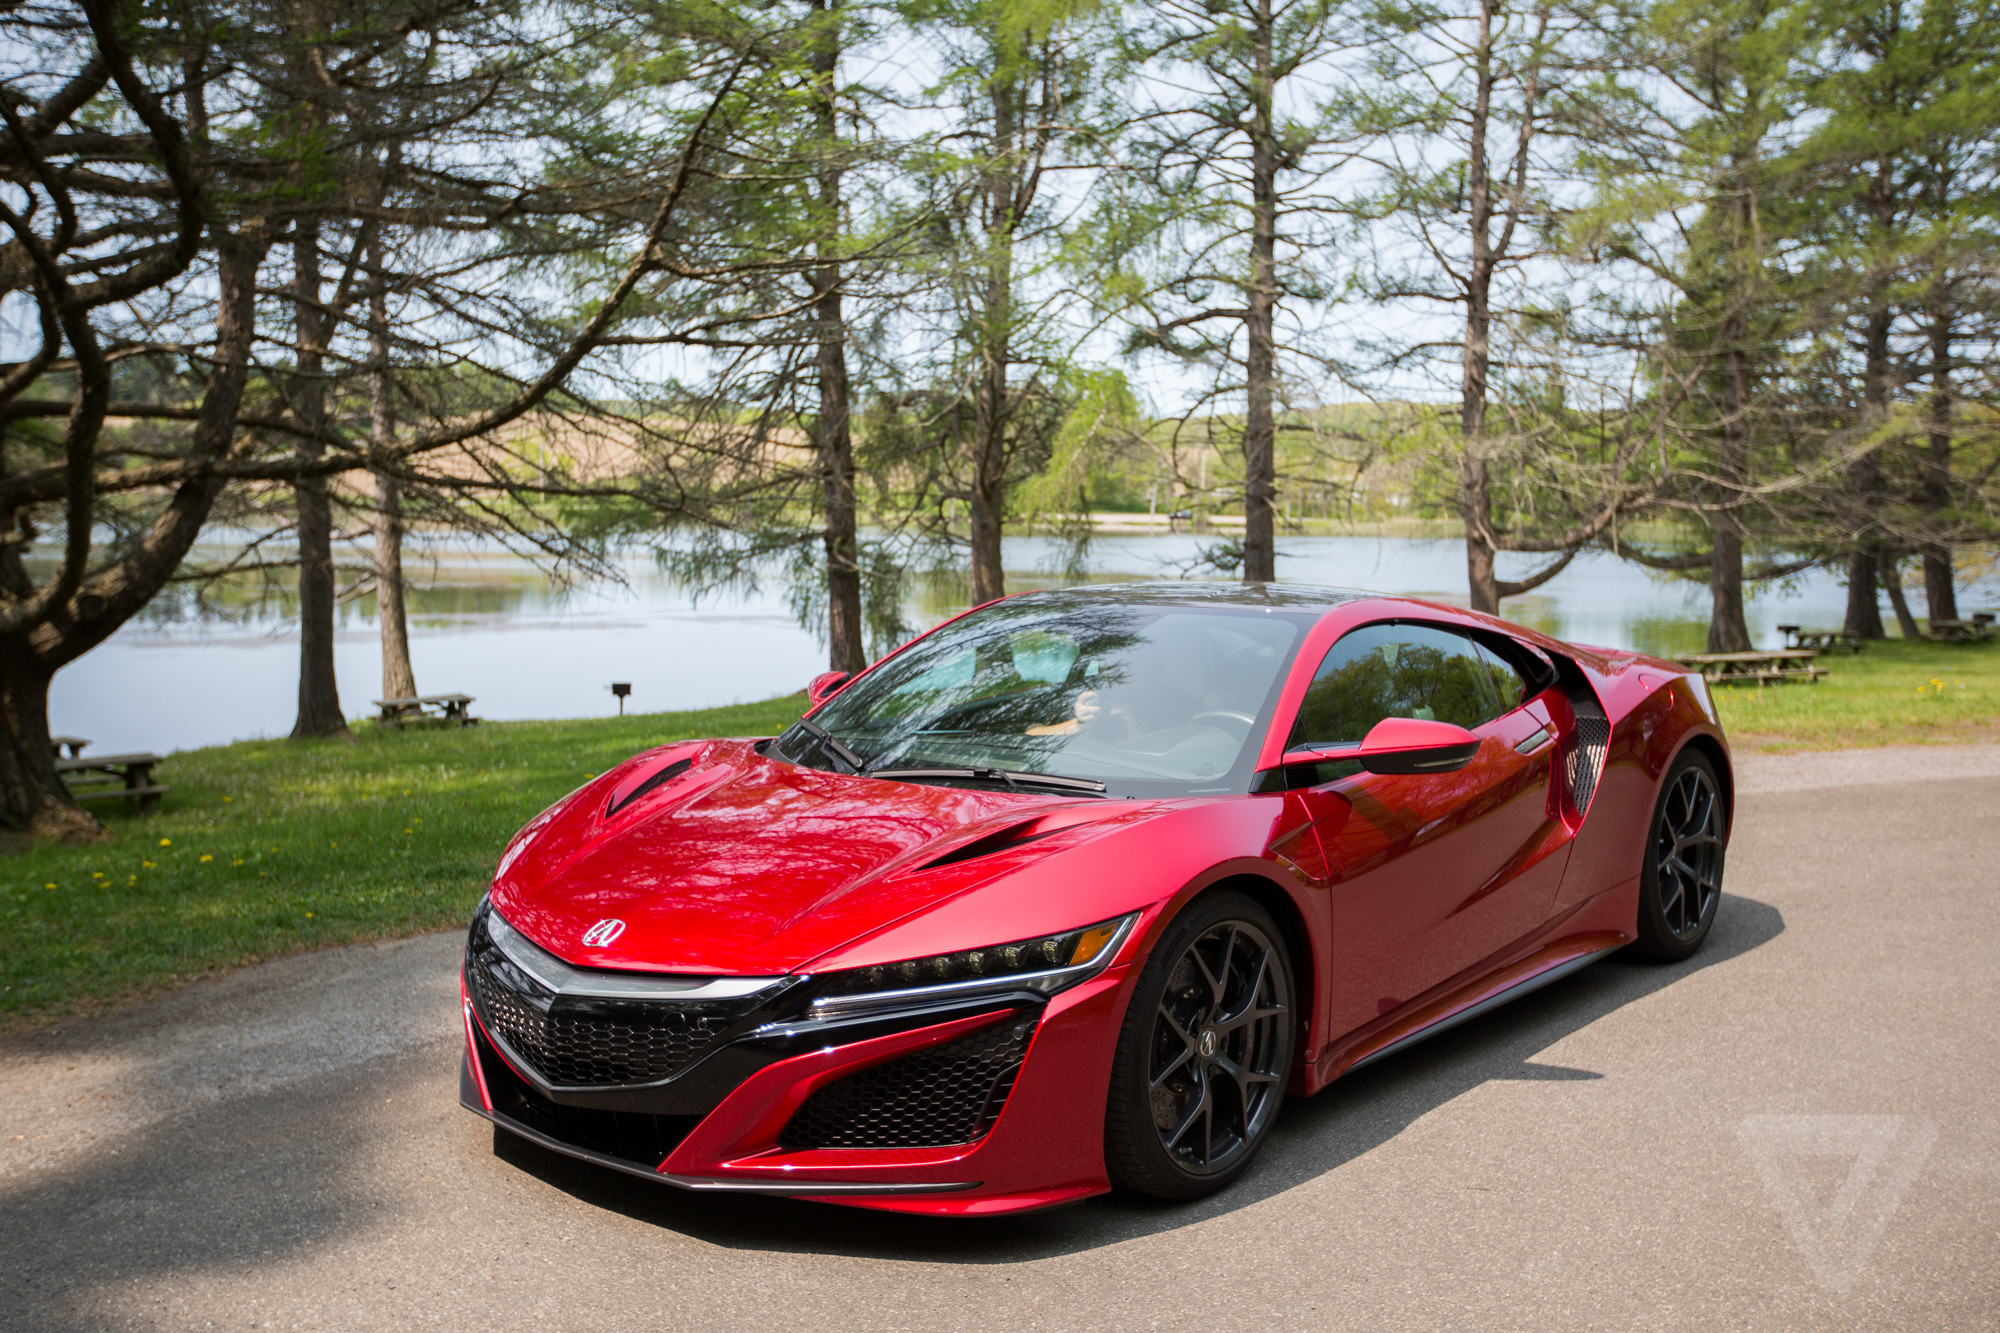 2017 Acura NSX review: a gentler supercar - The Verge